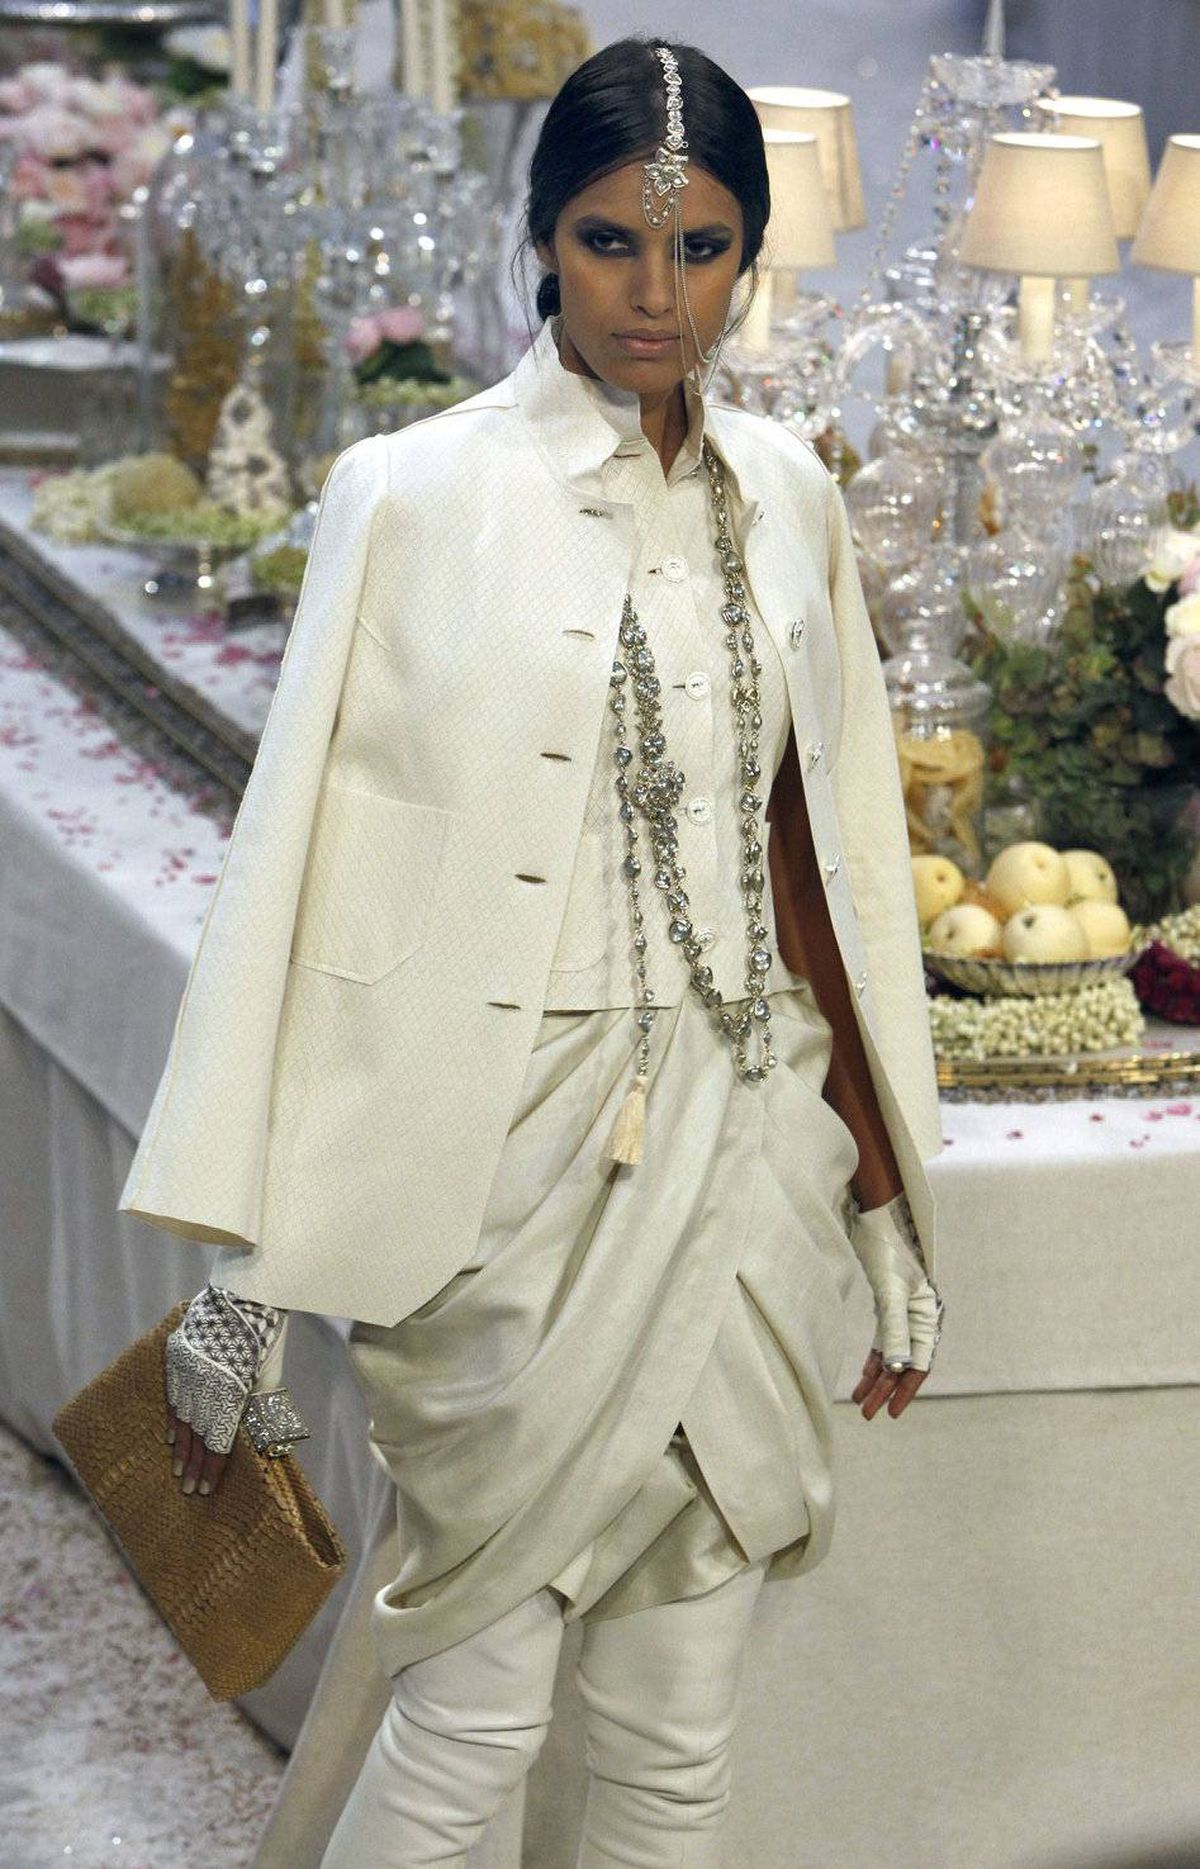 There is something particularly decadent about this all ivory everything statement. Better still, the metal-embellished, fingerless gloves. Note the jacket tossed over the outfit. Such insouciant chic!